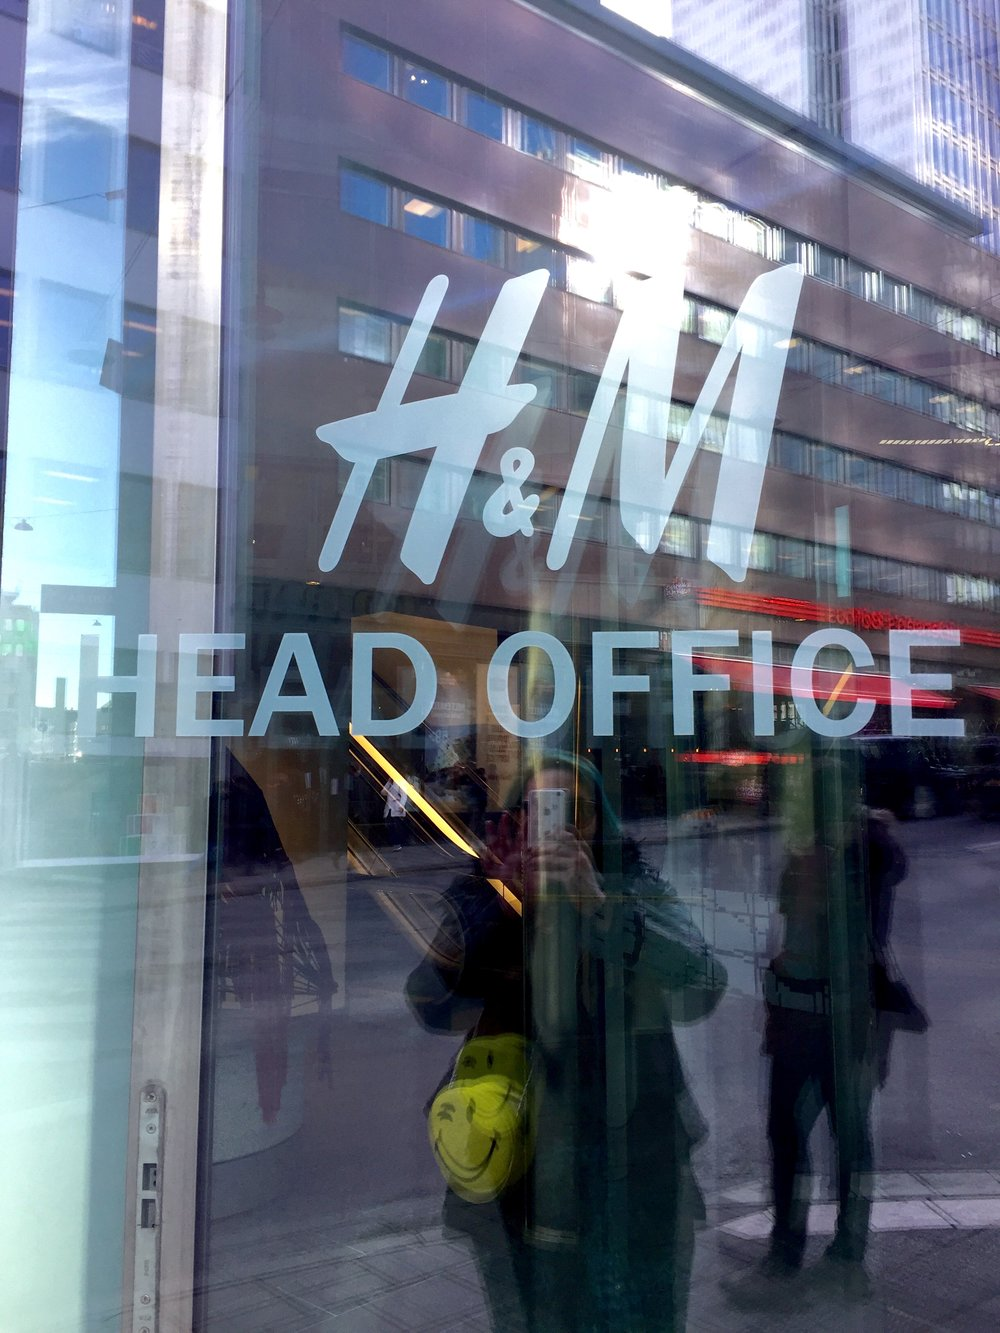 Sooooo excited to enter H+M head office in Stockholm